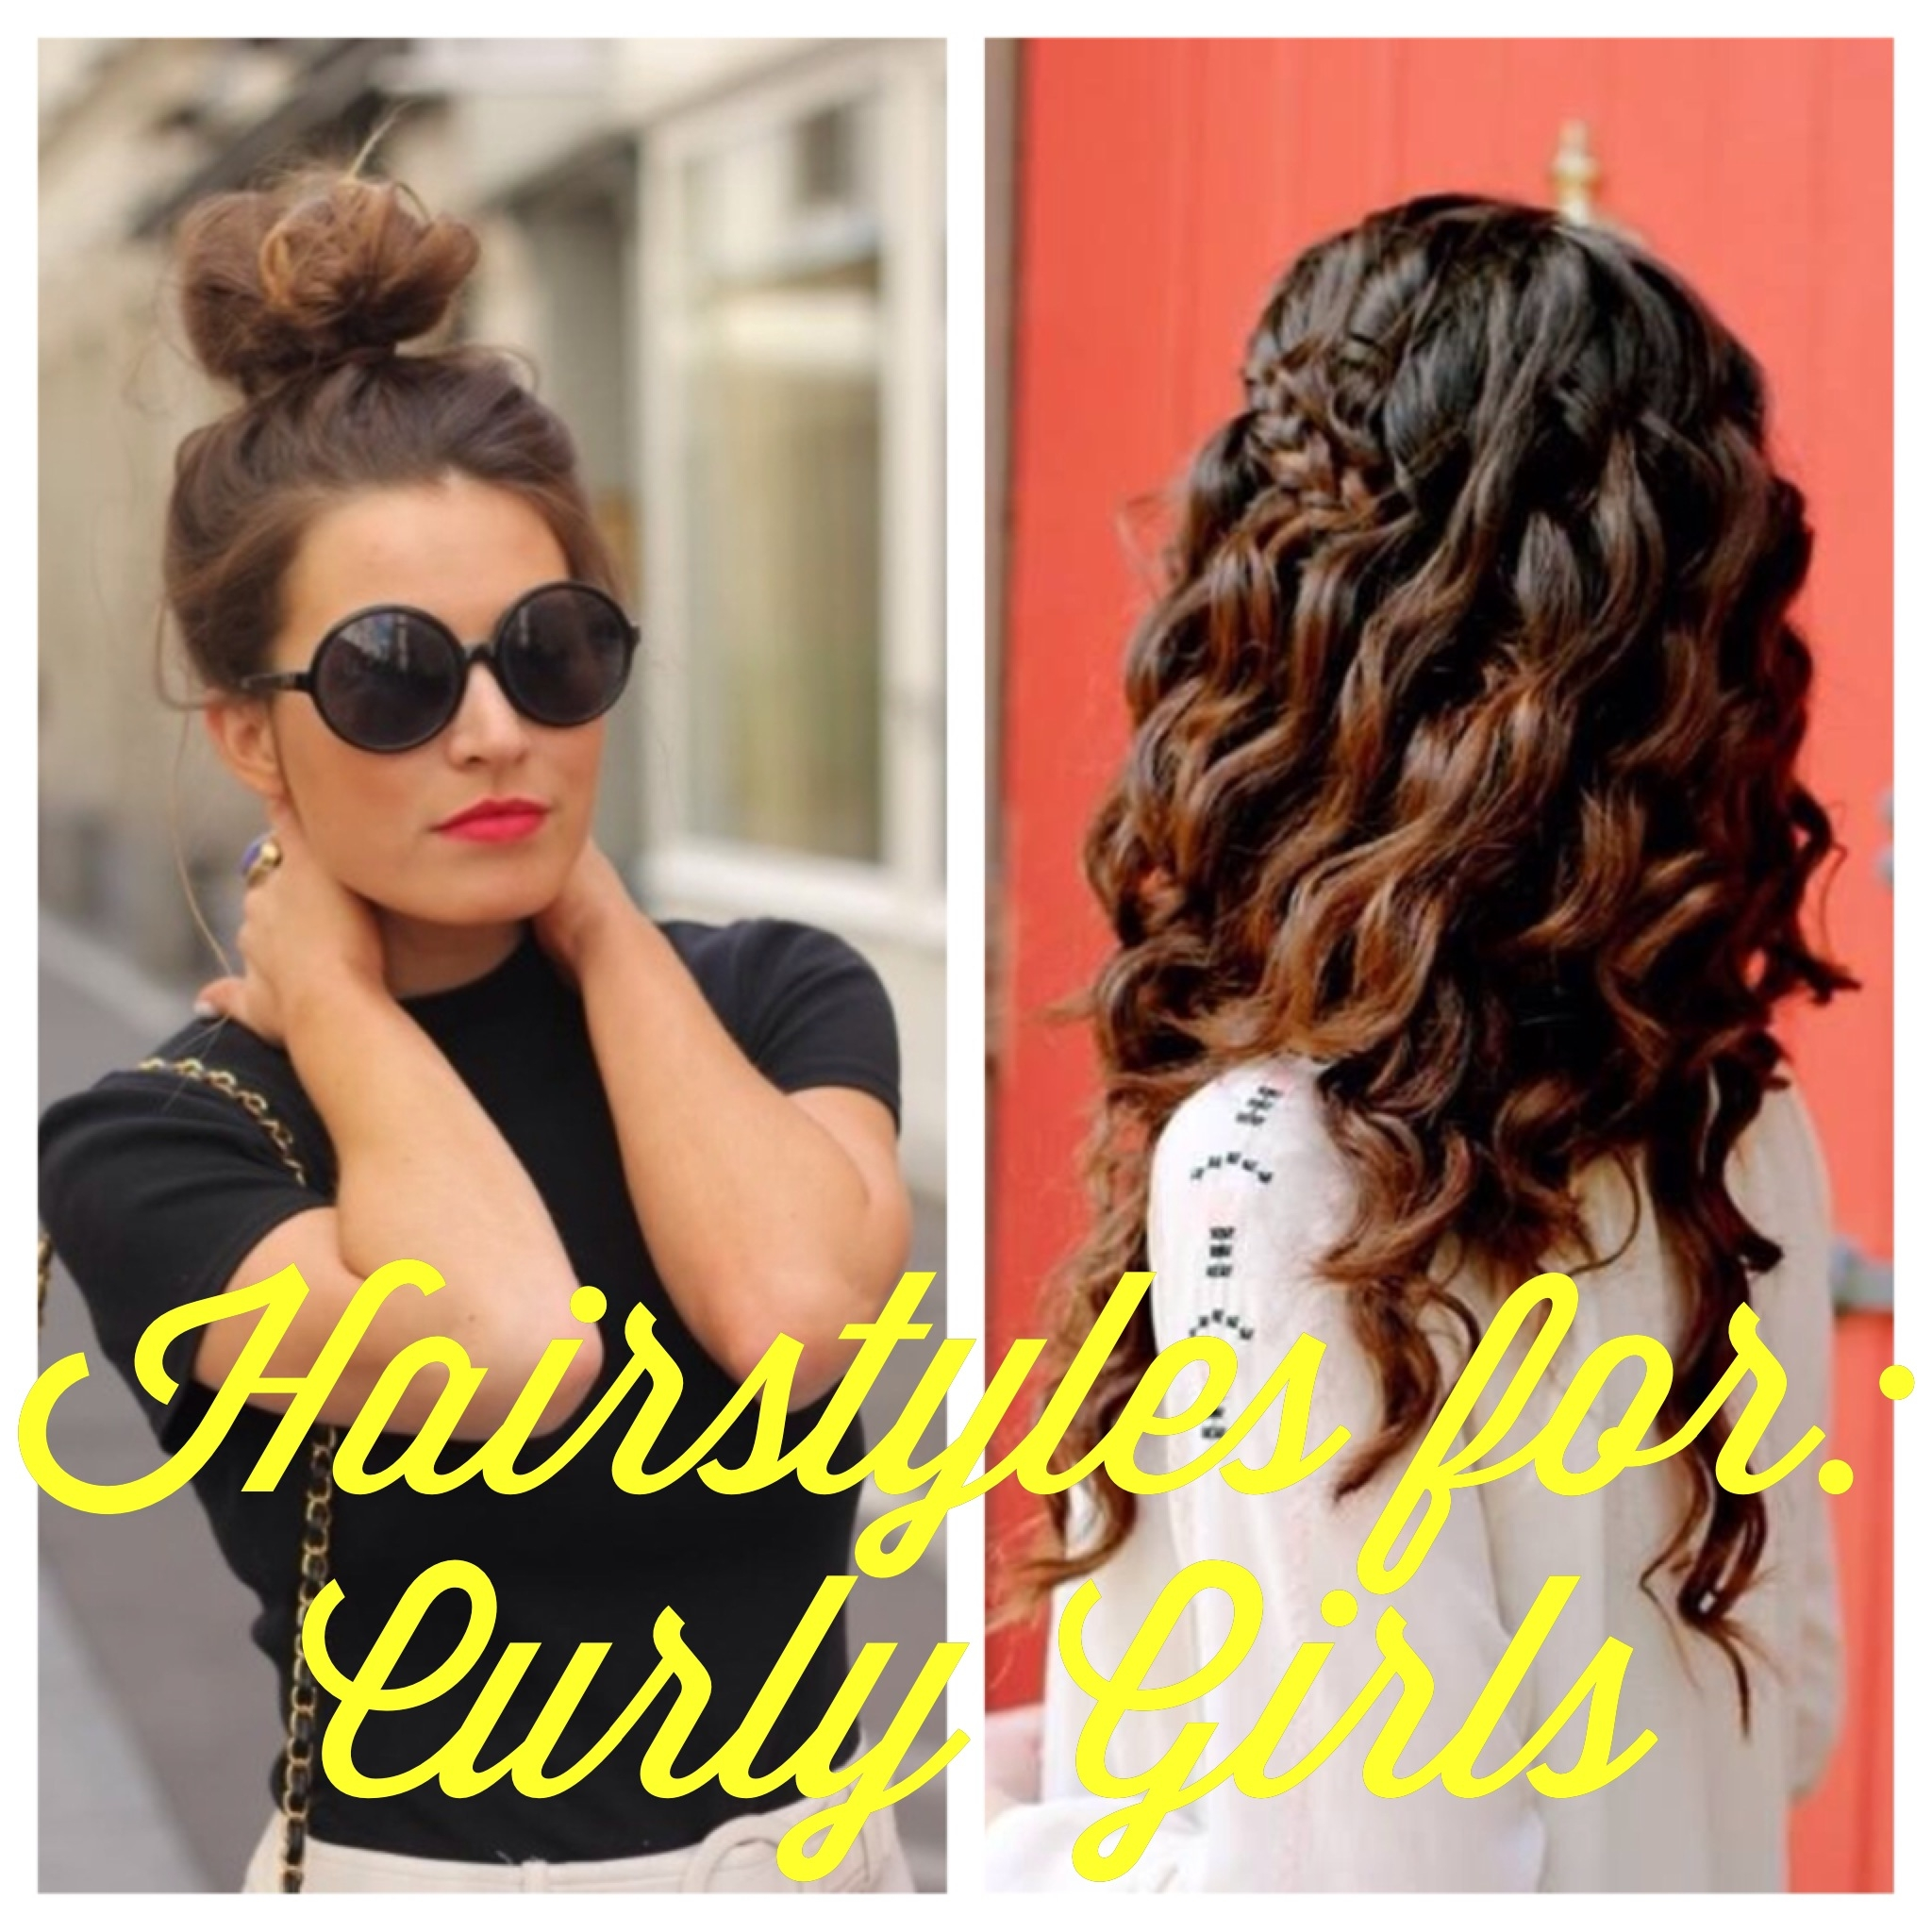 Marvelous Curly Hair Classy Girl With Curls Short Hairstyles Gunalazisus